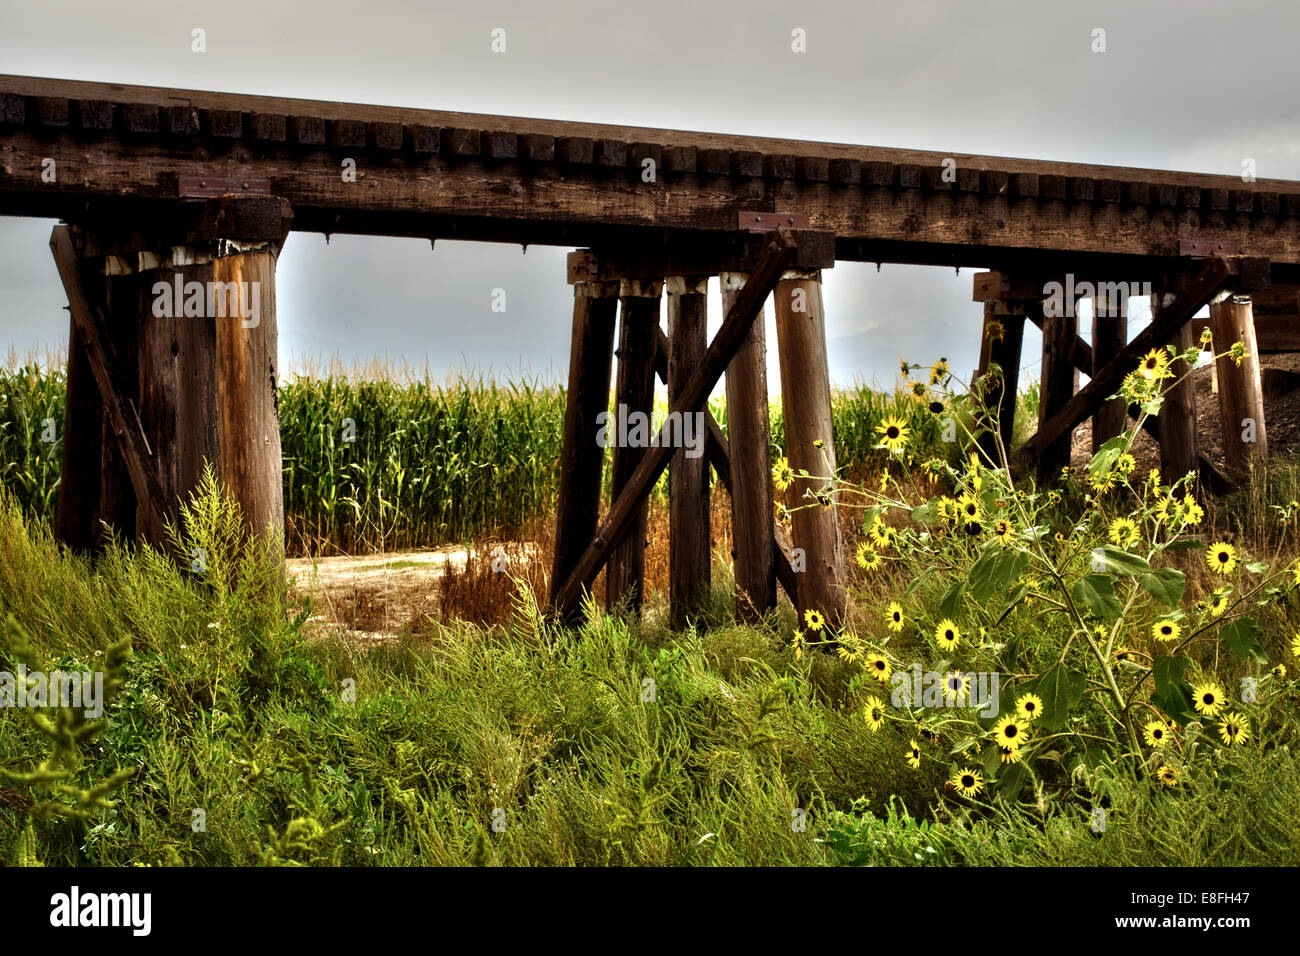 Rural train trestle surrounded by corn and wild flowers - Stock Image